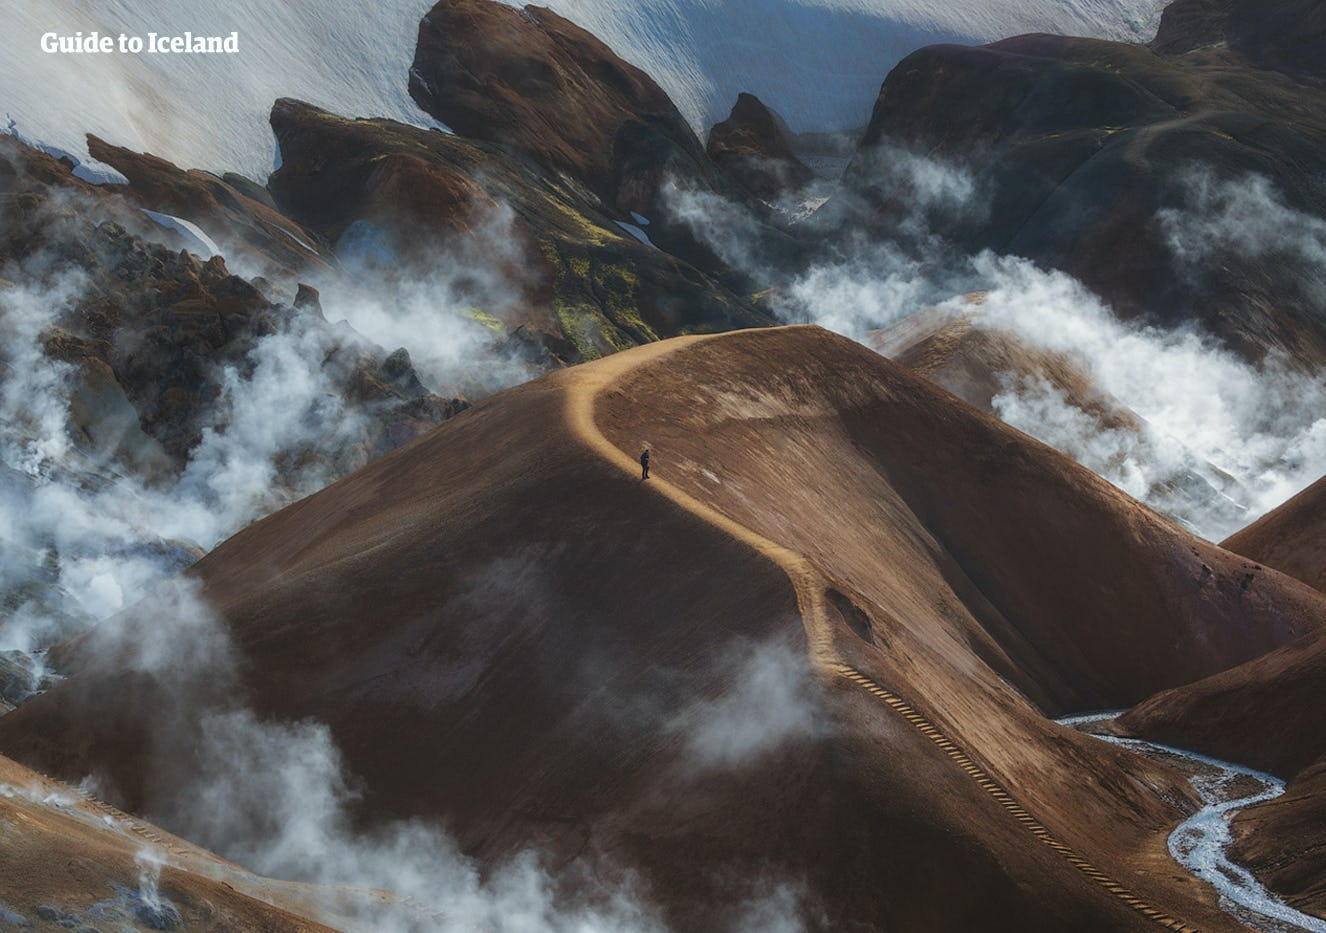 Hveravellir is a geothermal oasis located on the Kjölur Highland Road, in the very interior of the country.